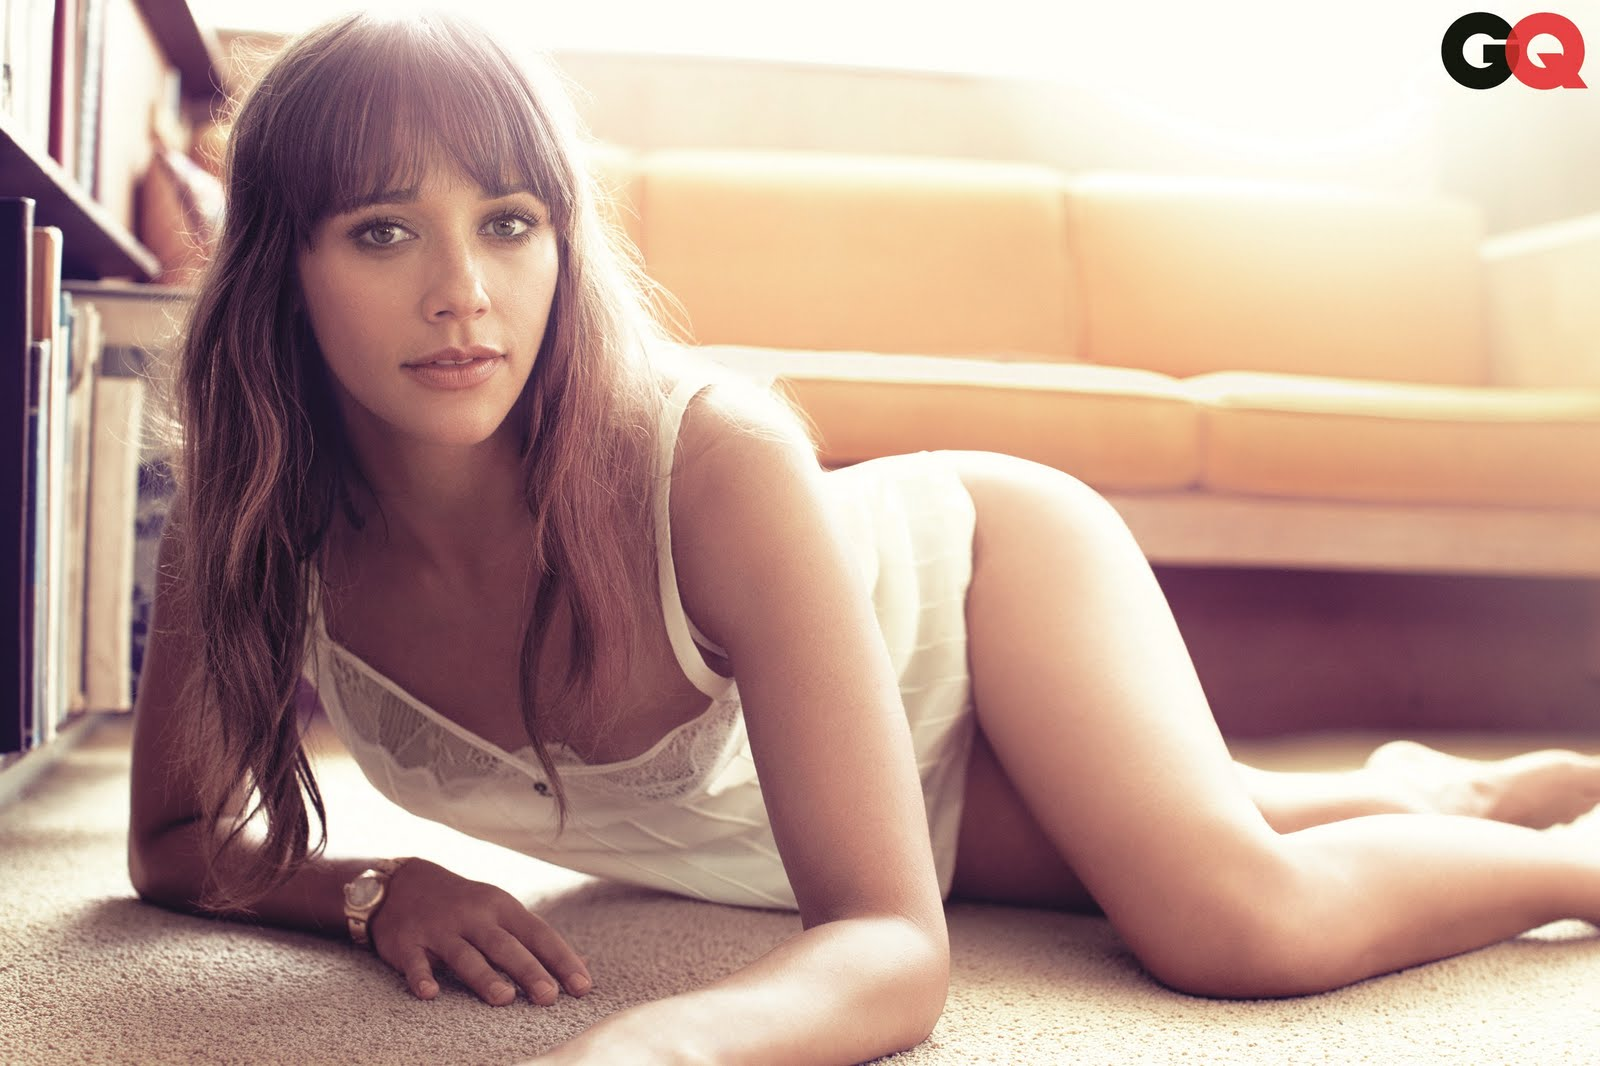 For rashida jones hot assured, what